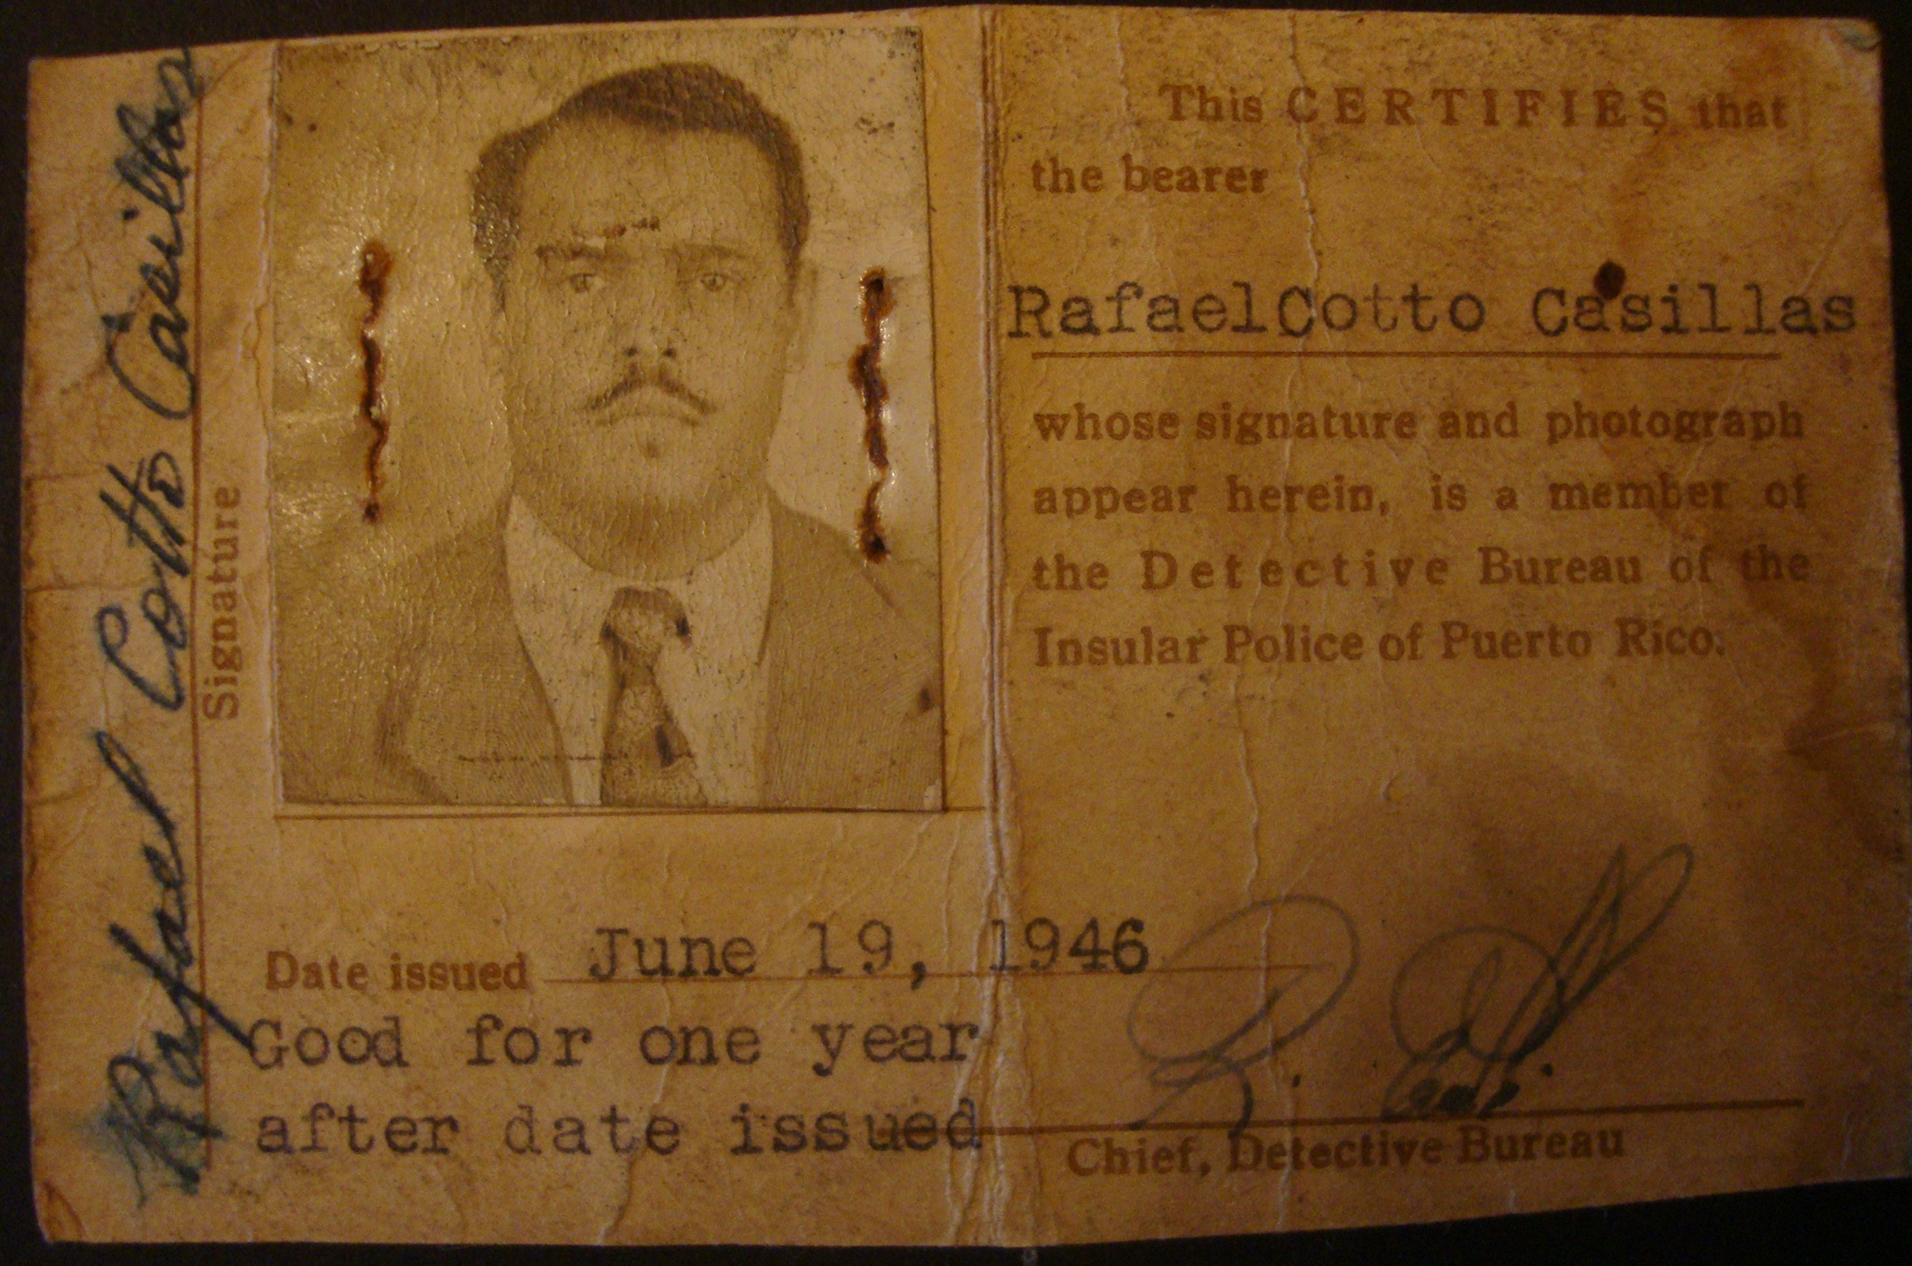 Detective Rafael Cotto-Casillas | Puerto Rico Police Department, Puerto Rico